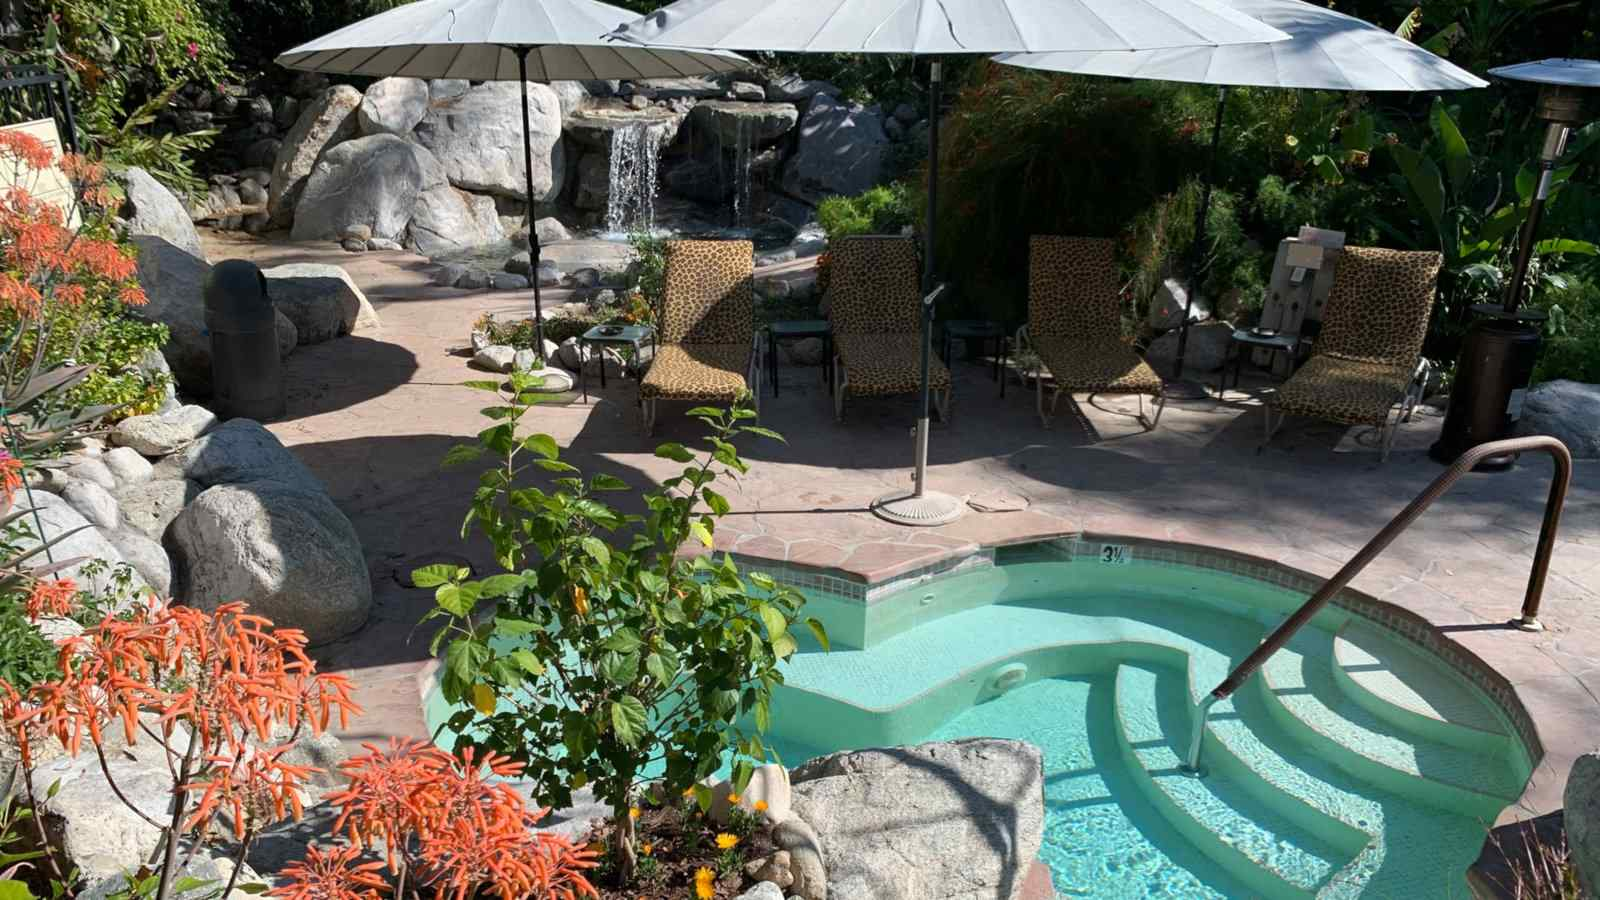 Vista Grande Resort is one of the best gay resorts in Palm Springs with beautiful gardens and even a waterfall